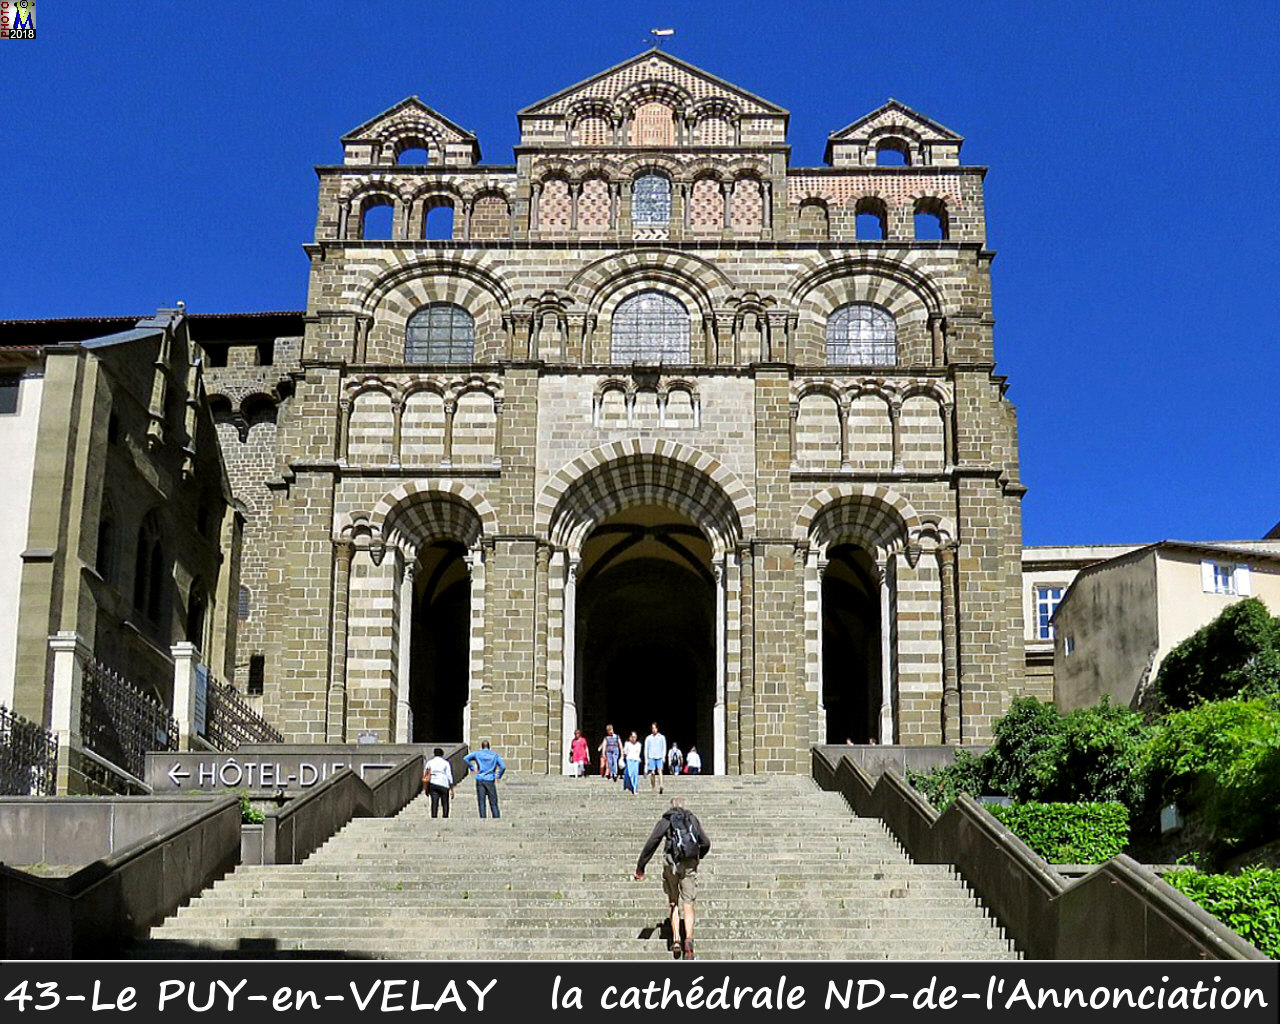 43PUY-EN-VELAY_cathedrale_112.jpg